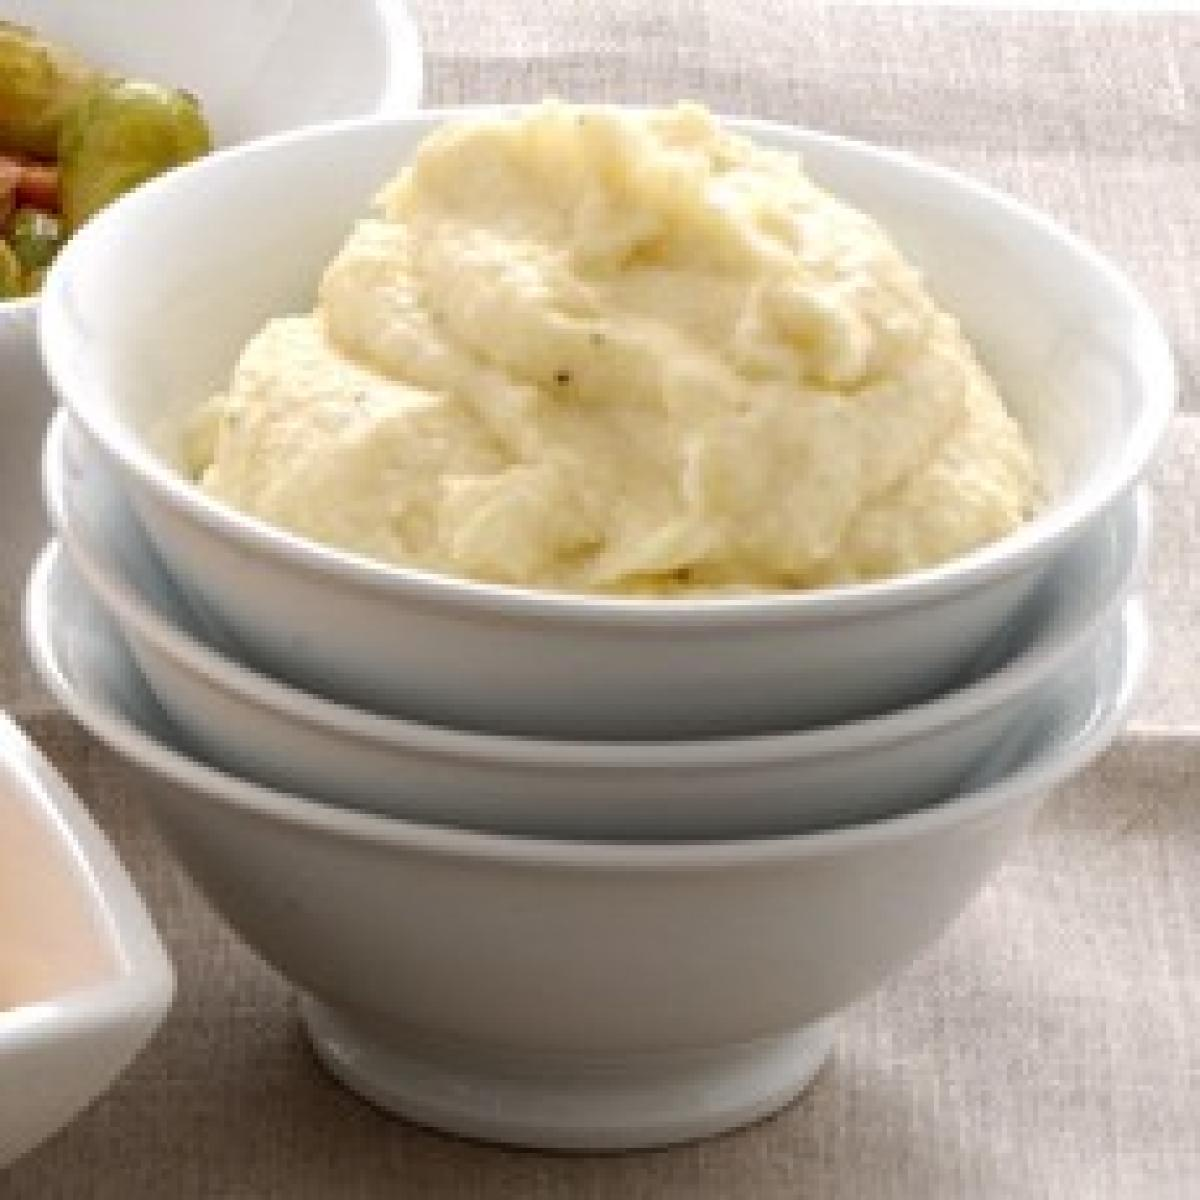 A picture of Delia's Puree of Potato and Celeriac with Garlic recipe